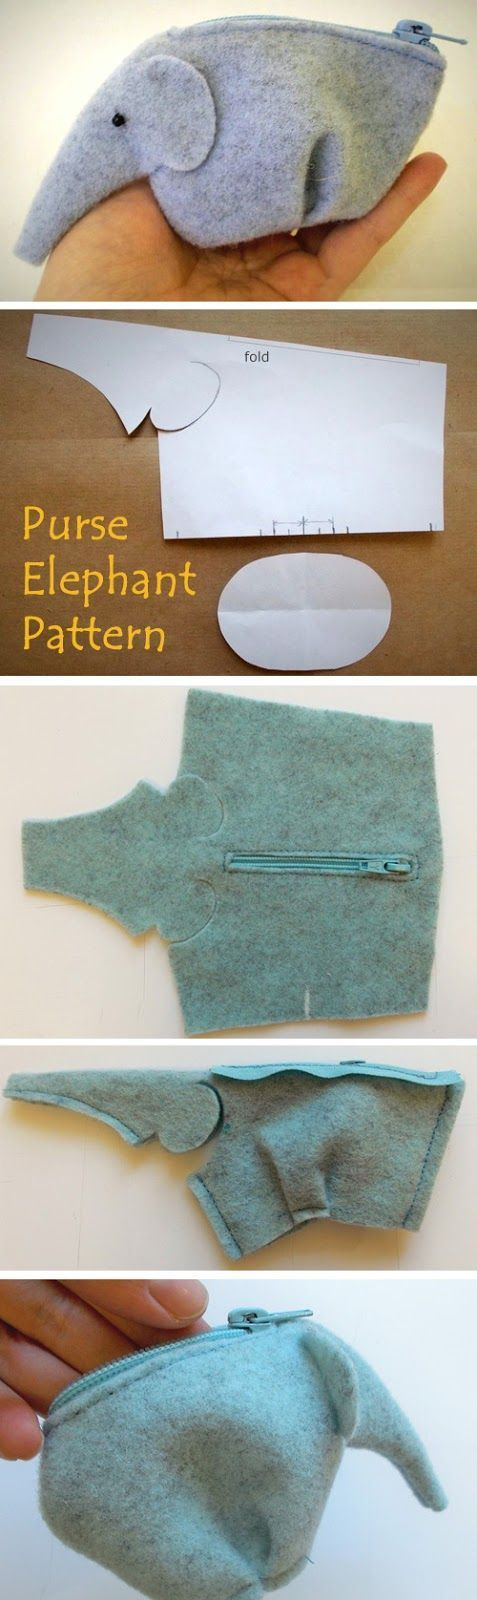 DIY Elephant Purse Bag Sewing Tutorial | If you love to make bags, check out http://www.sewinlove.com.au/tag/bags/ for more fun and easy sewing projects.